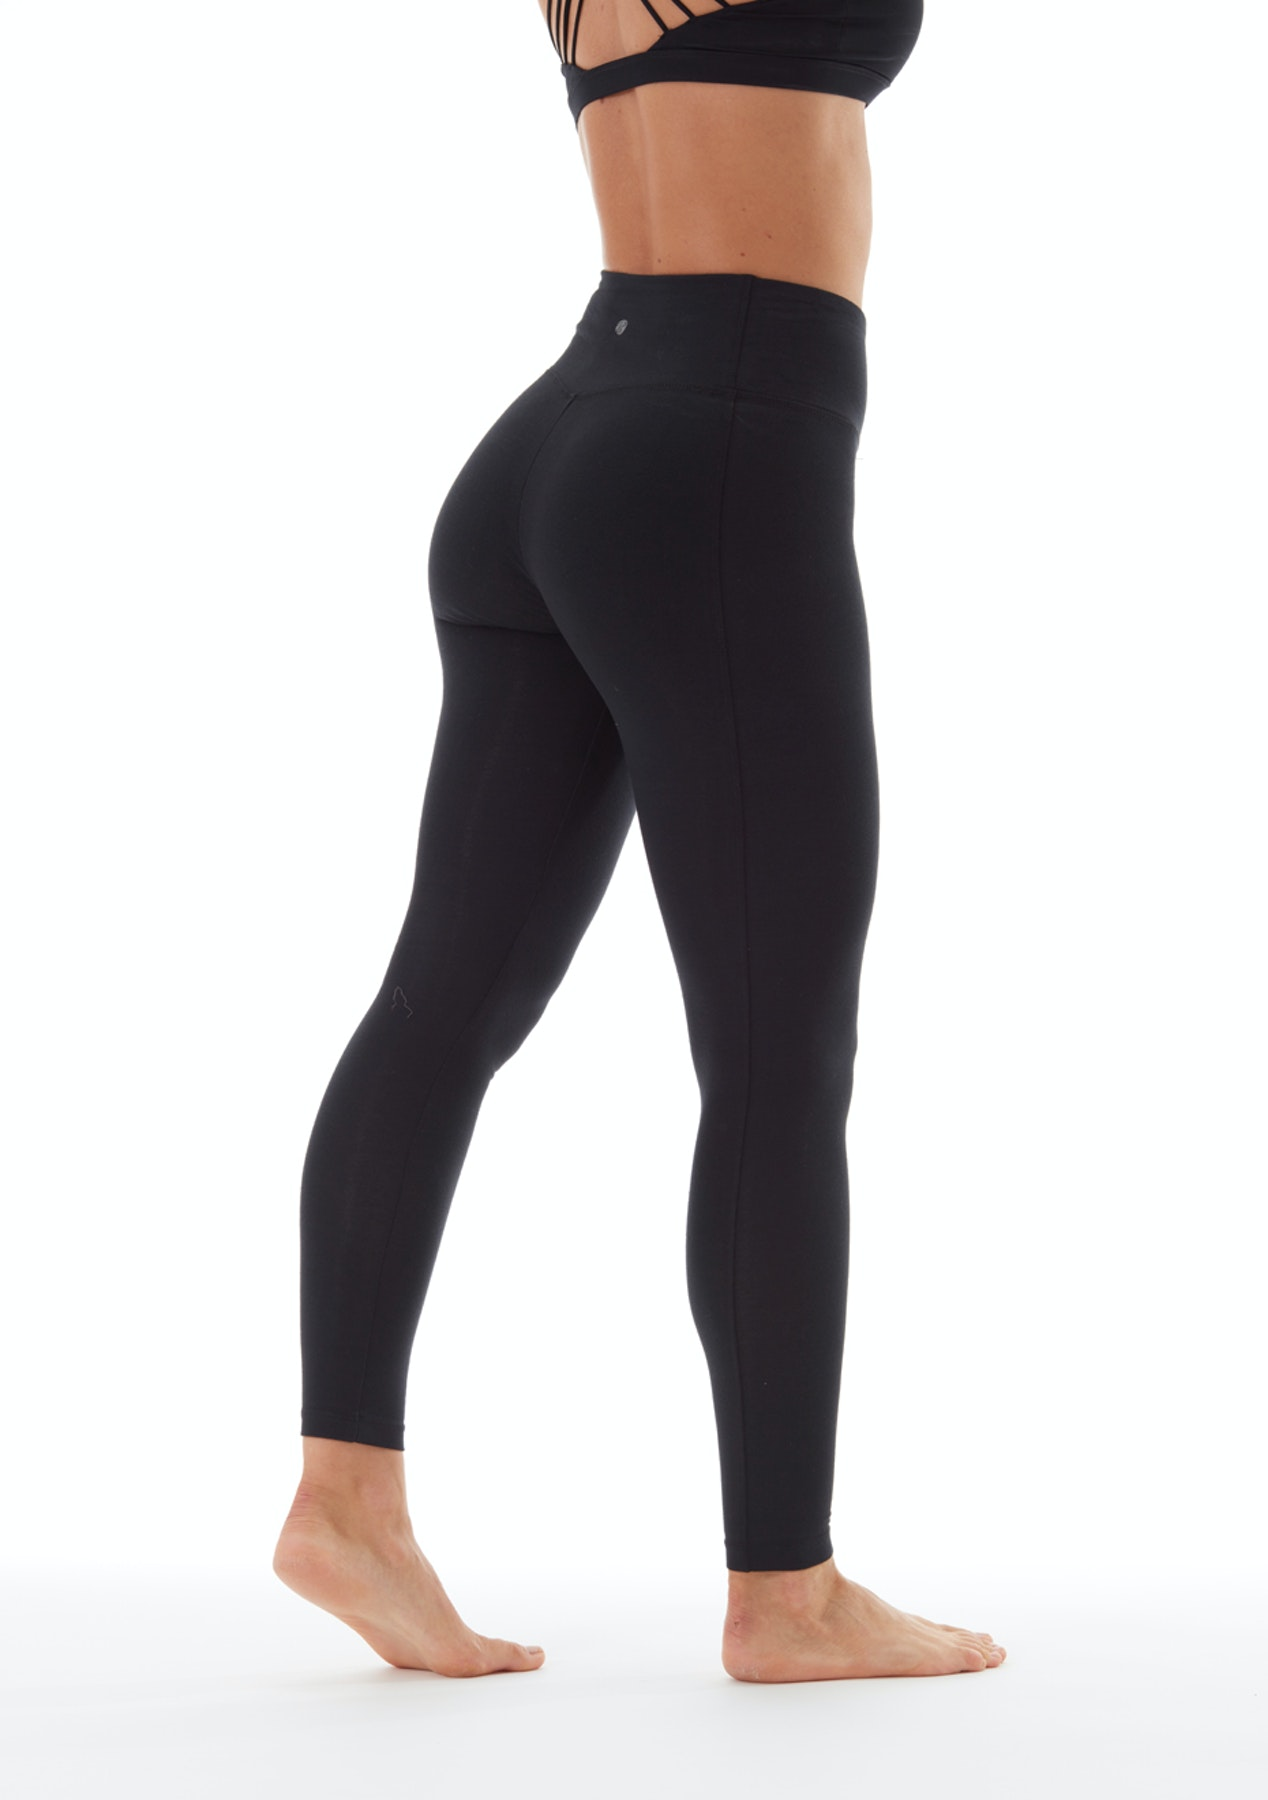 c56fc0e10bd73 Bally Total Fitness - High Rise Tummy Control Legging - Black - Bally Total  Fitness - Onceit